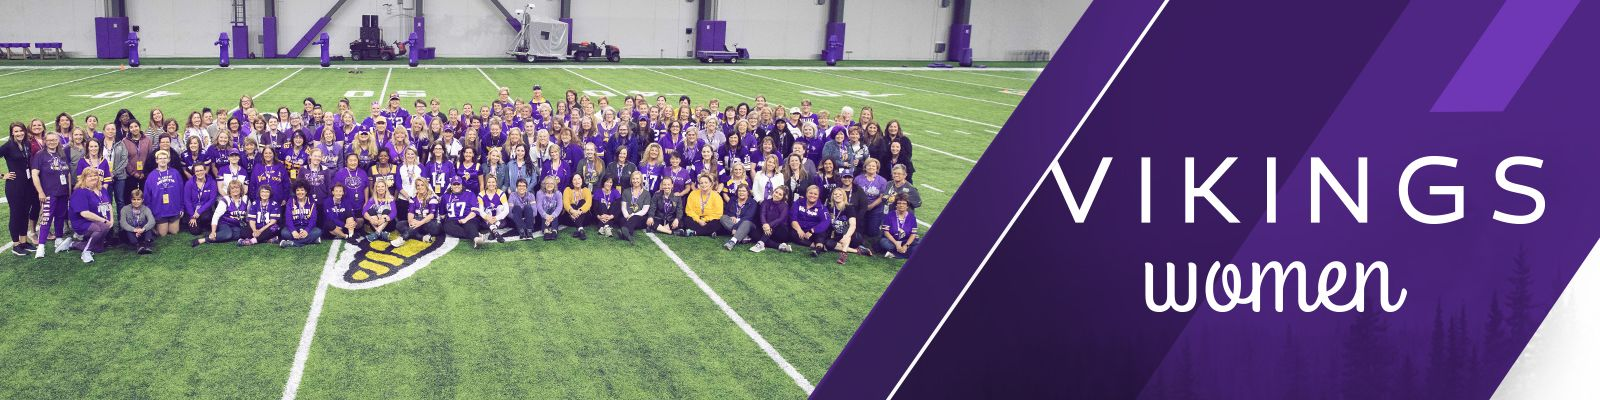 Vikings Women Header 2019